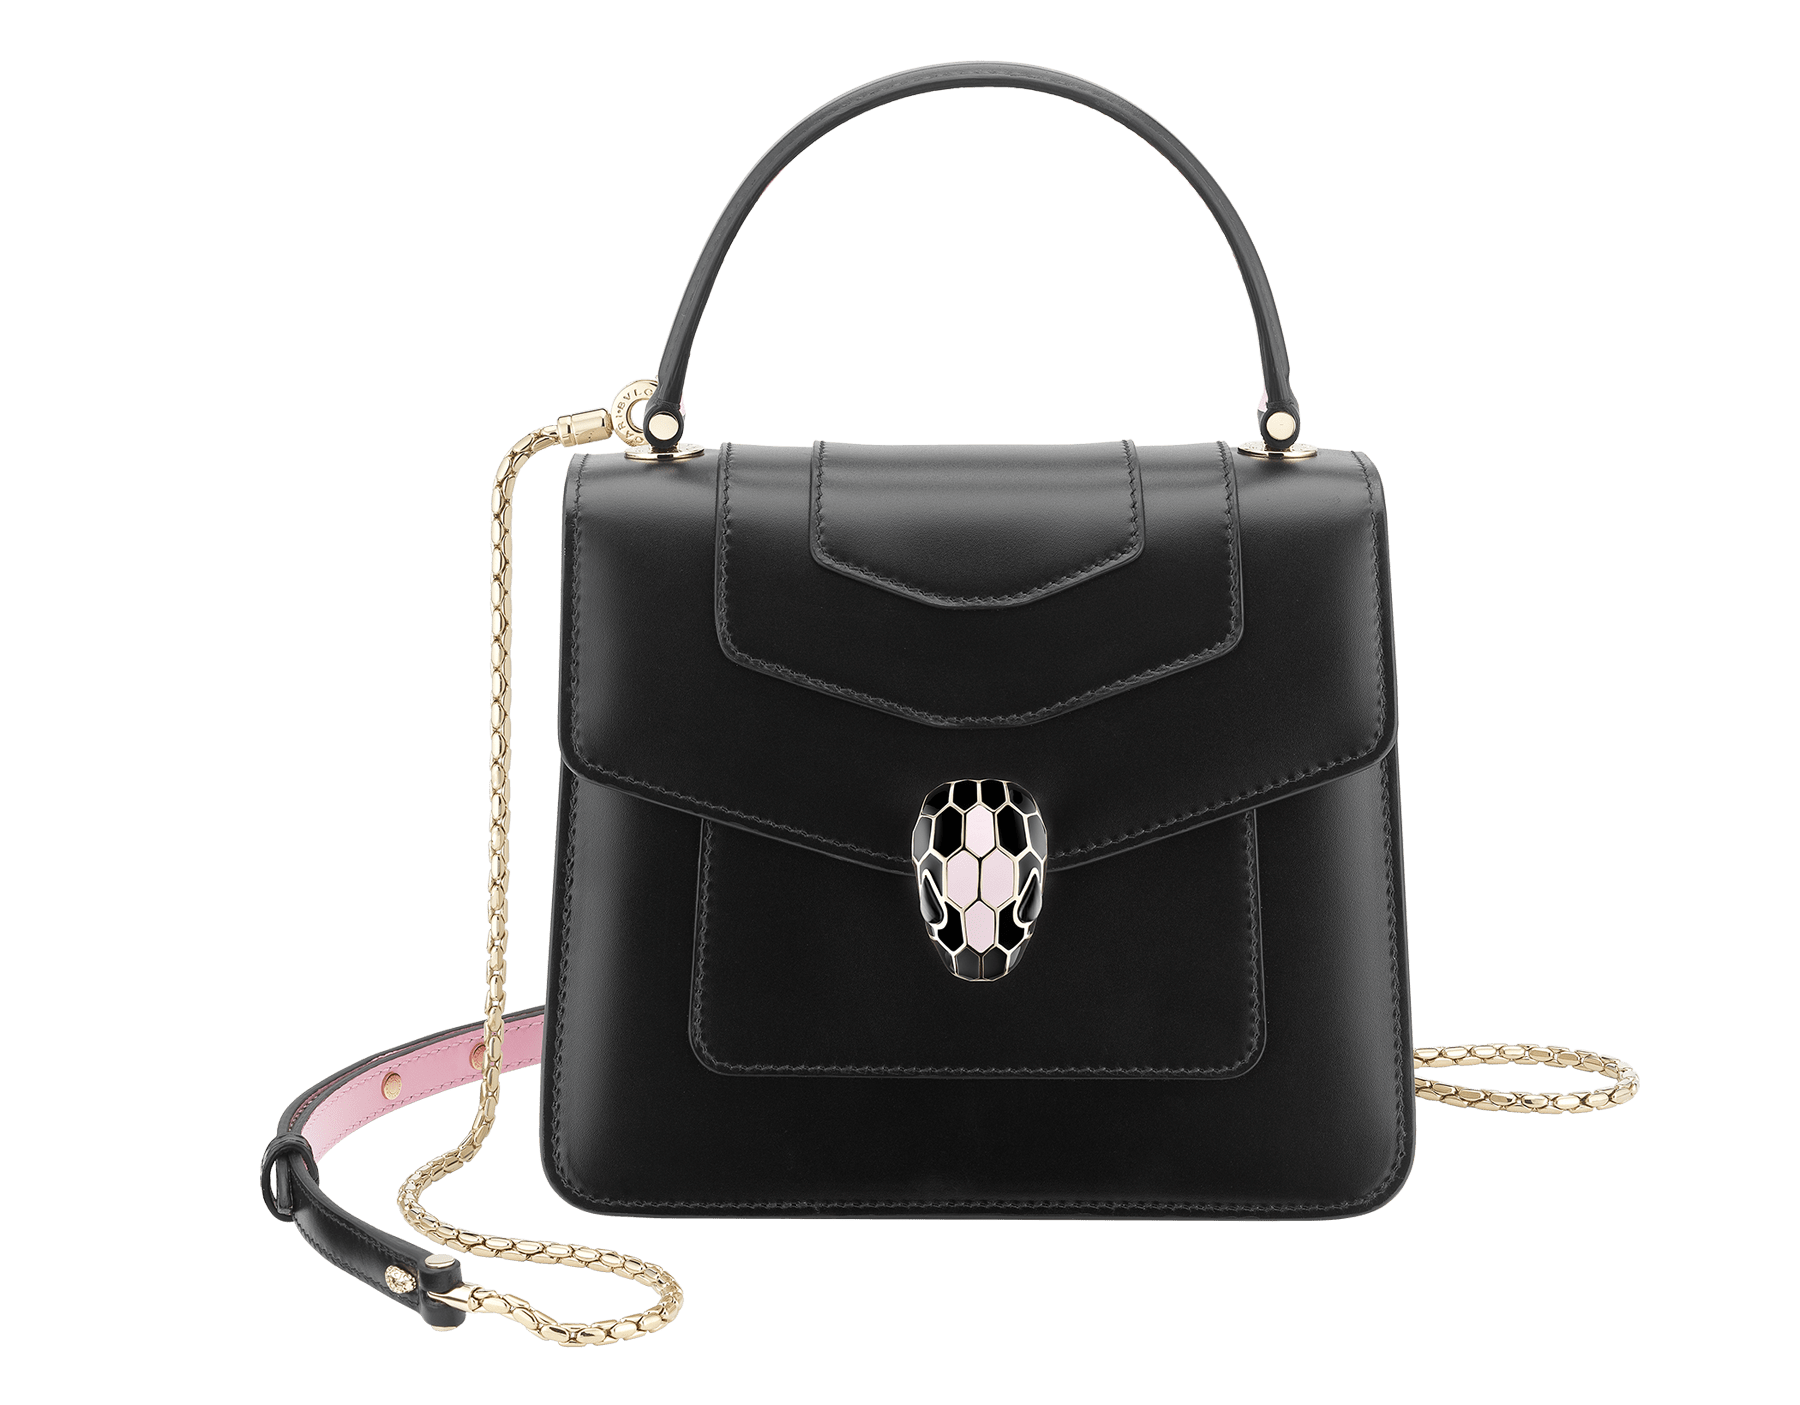 """""""Serpenti Forever """" crossbody bag in white calf leather body and white agate and crystal rose calf leather sides. Iconic snakehead closure in light gold plated brass enriched with white and crystal rose enamel and black onyx eyes. 752-MCLa image 1"""